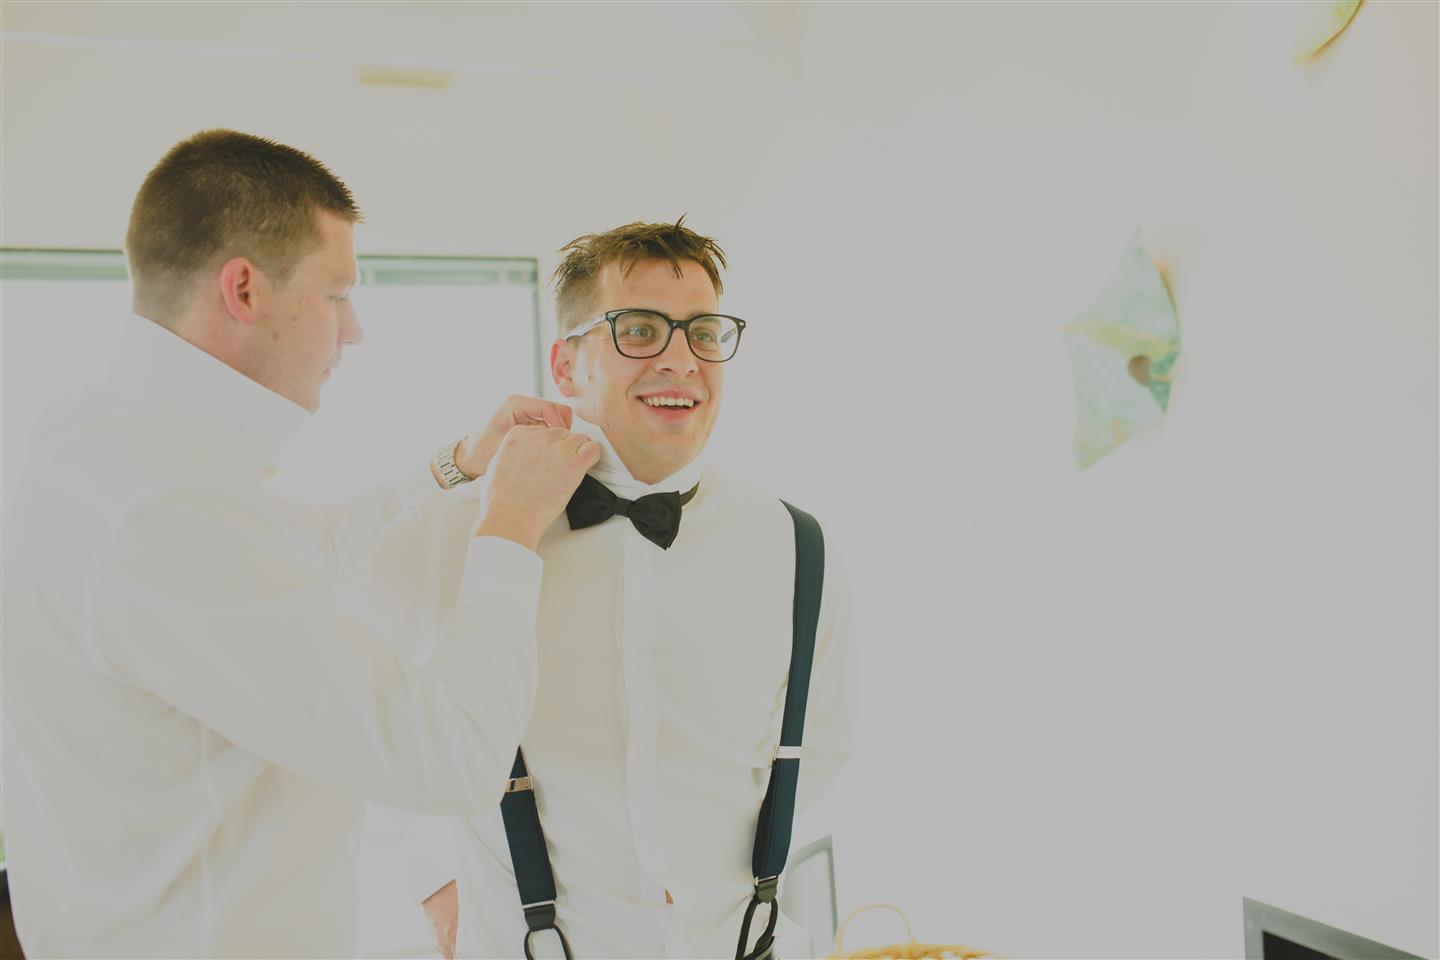 Groom Getting Ready - An Elegant Spring Vintage Wedding